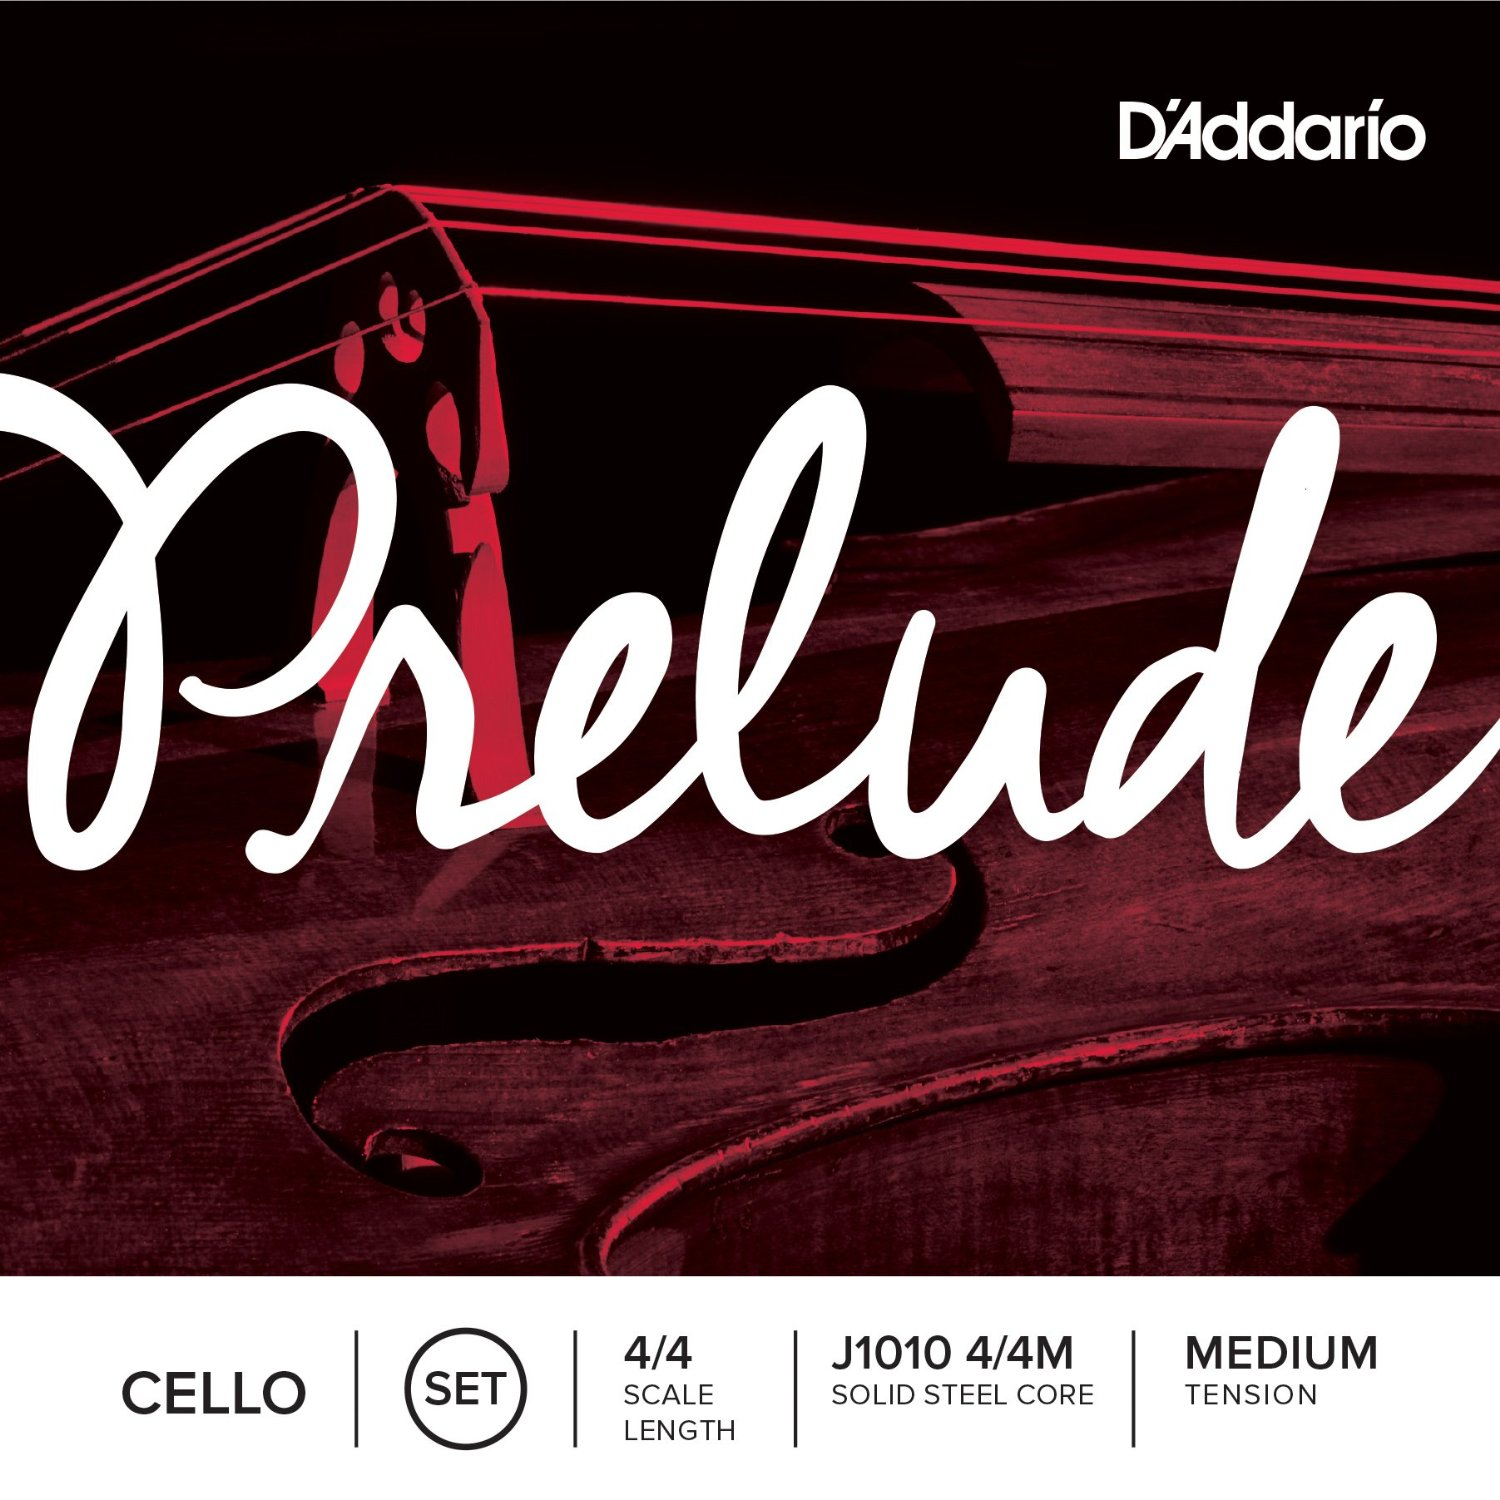 D'Addario Prelude Cello Strings for sale at bridgewood and neitzert london